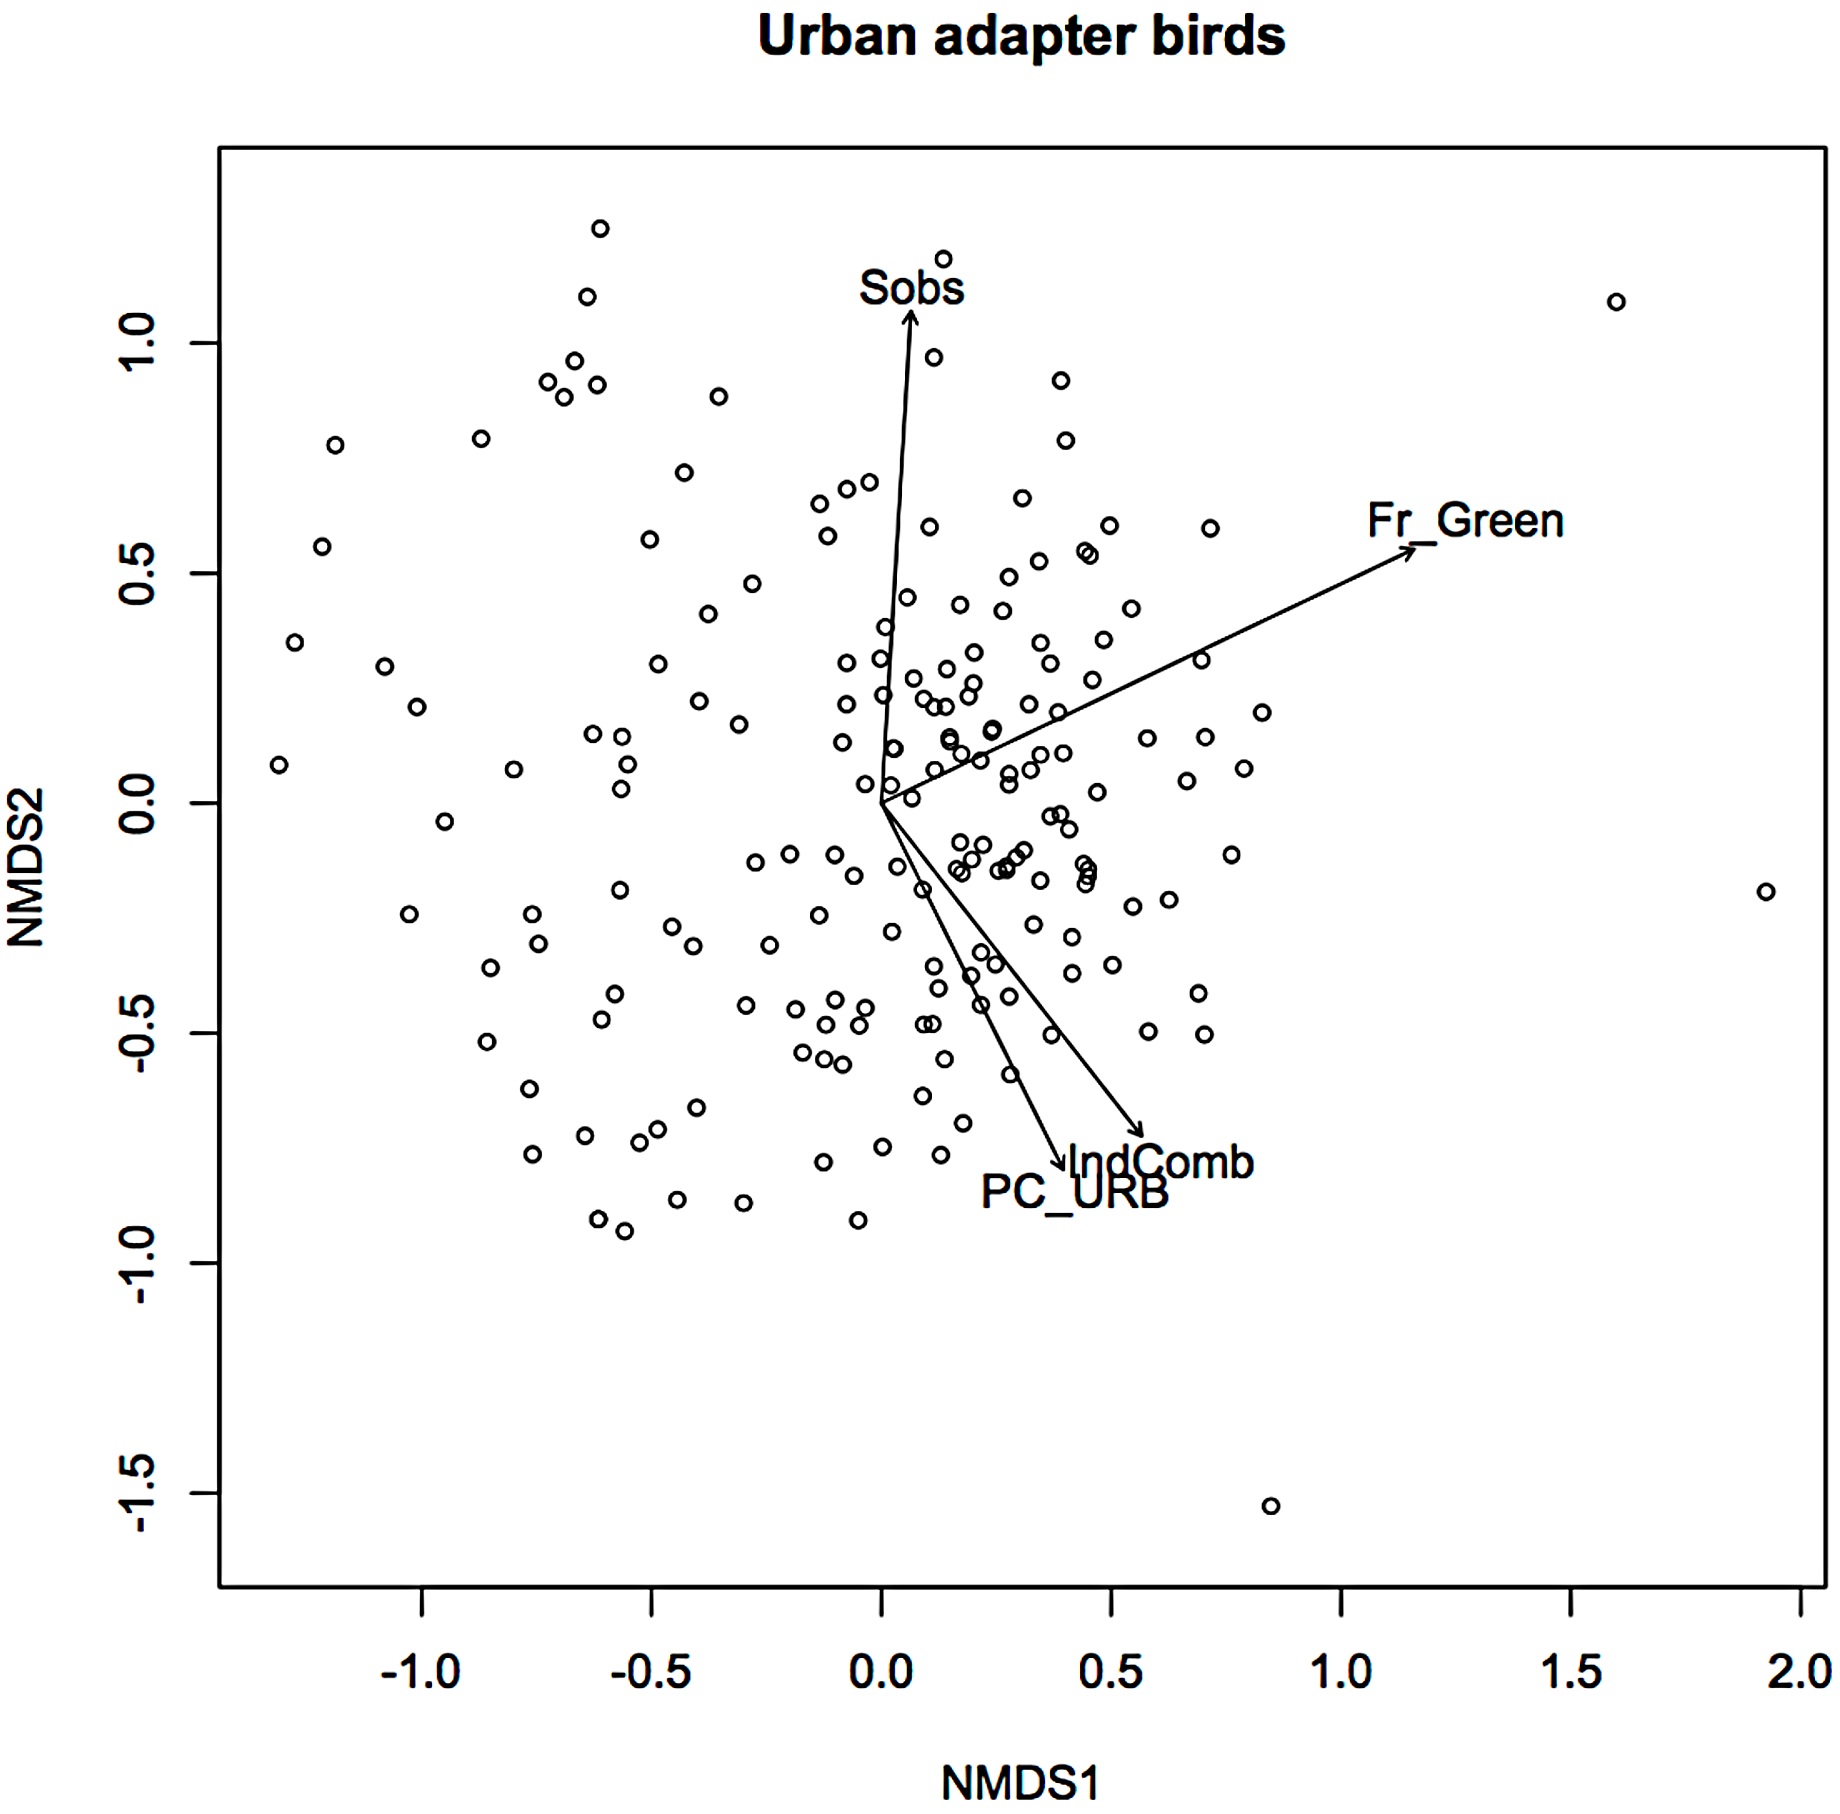 Degree of adaptive response in urban tolerant birds shows